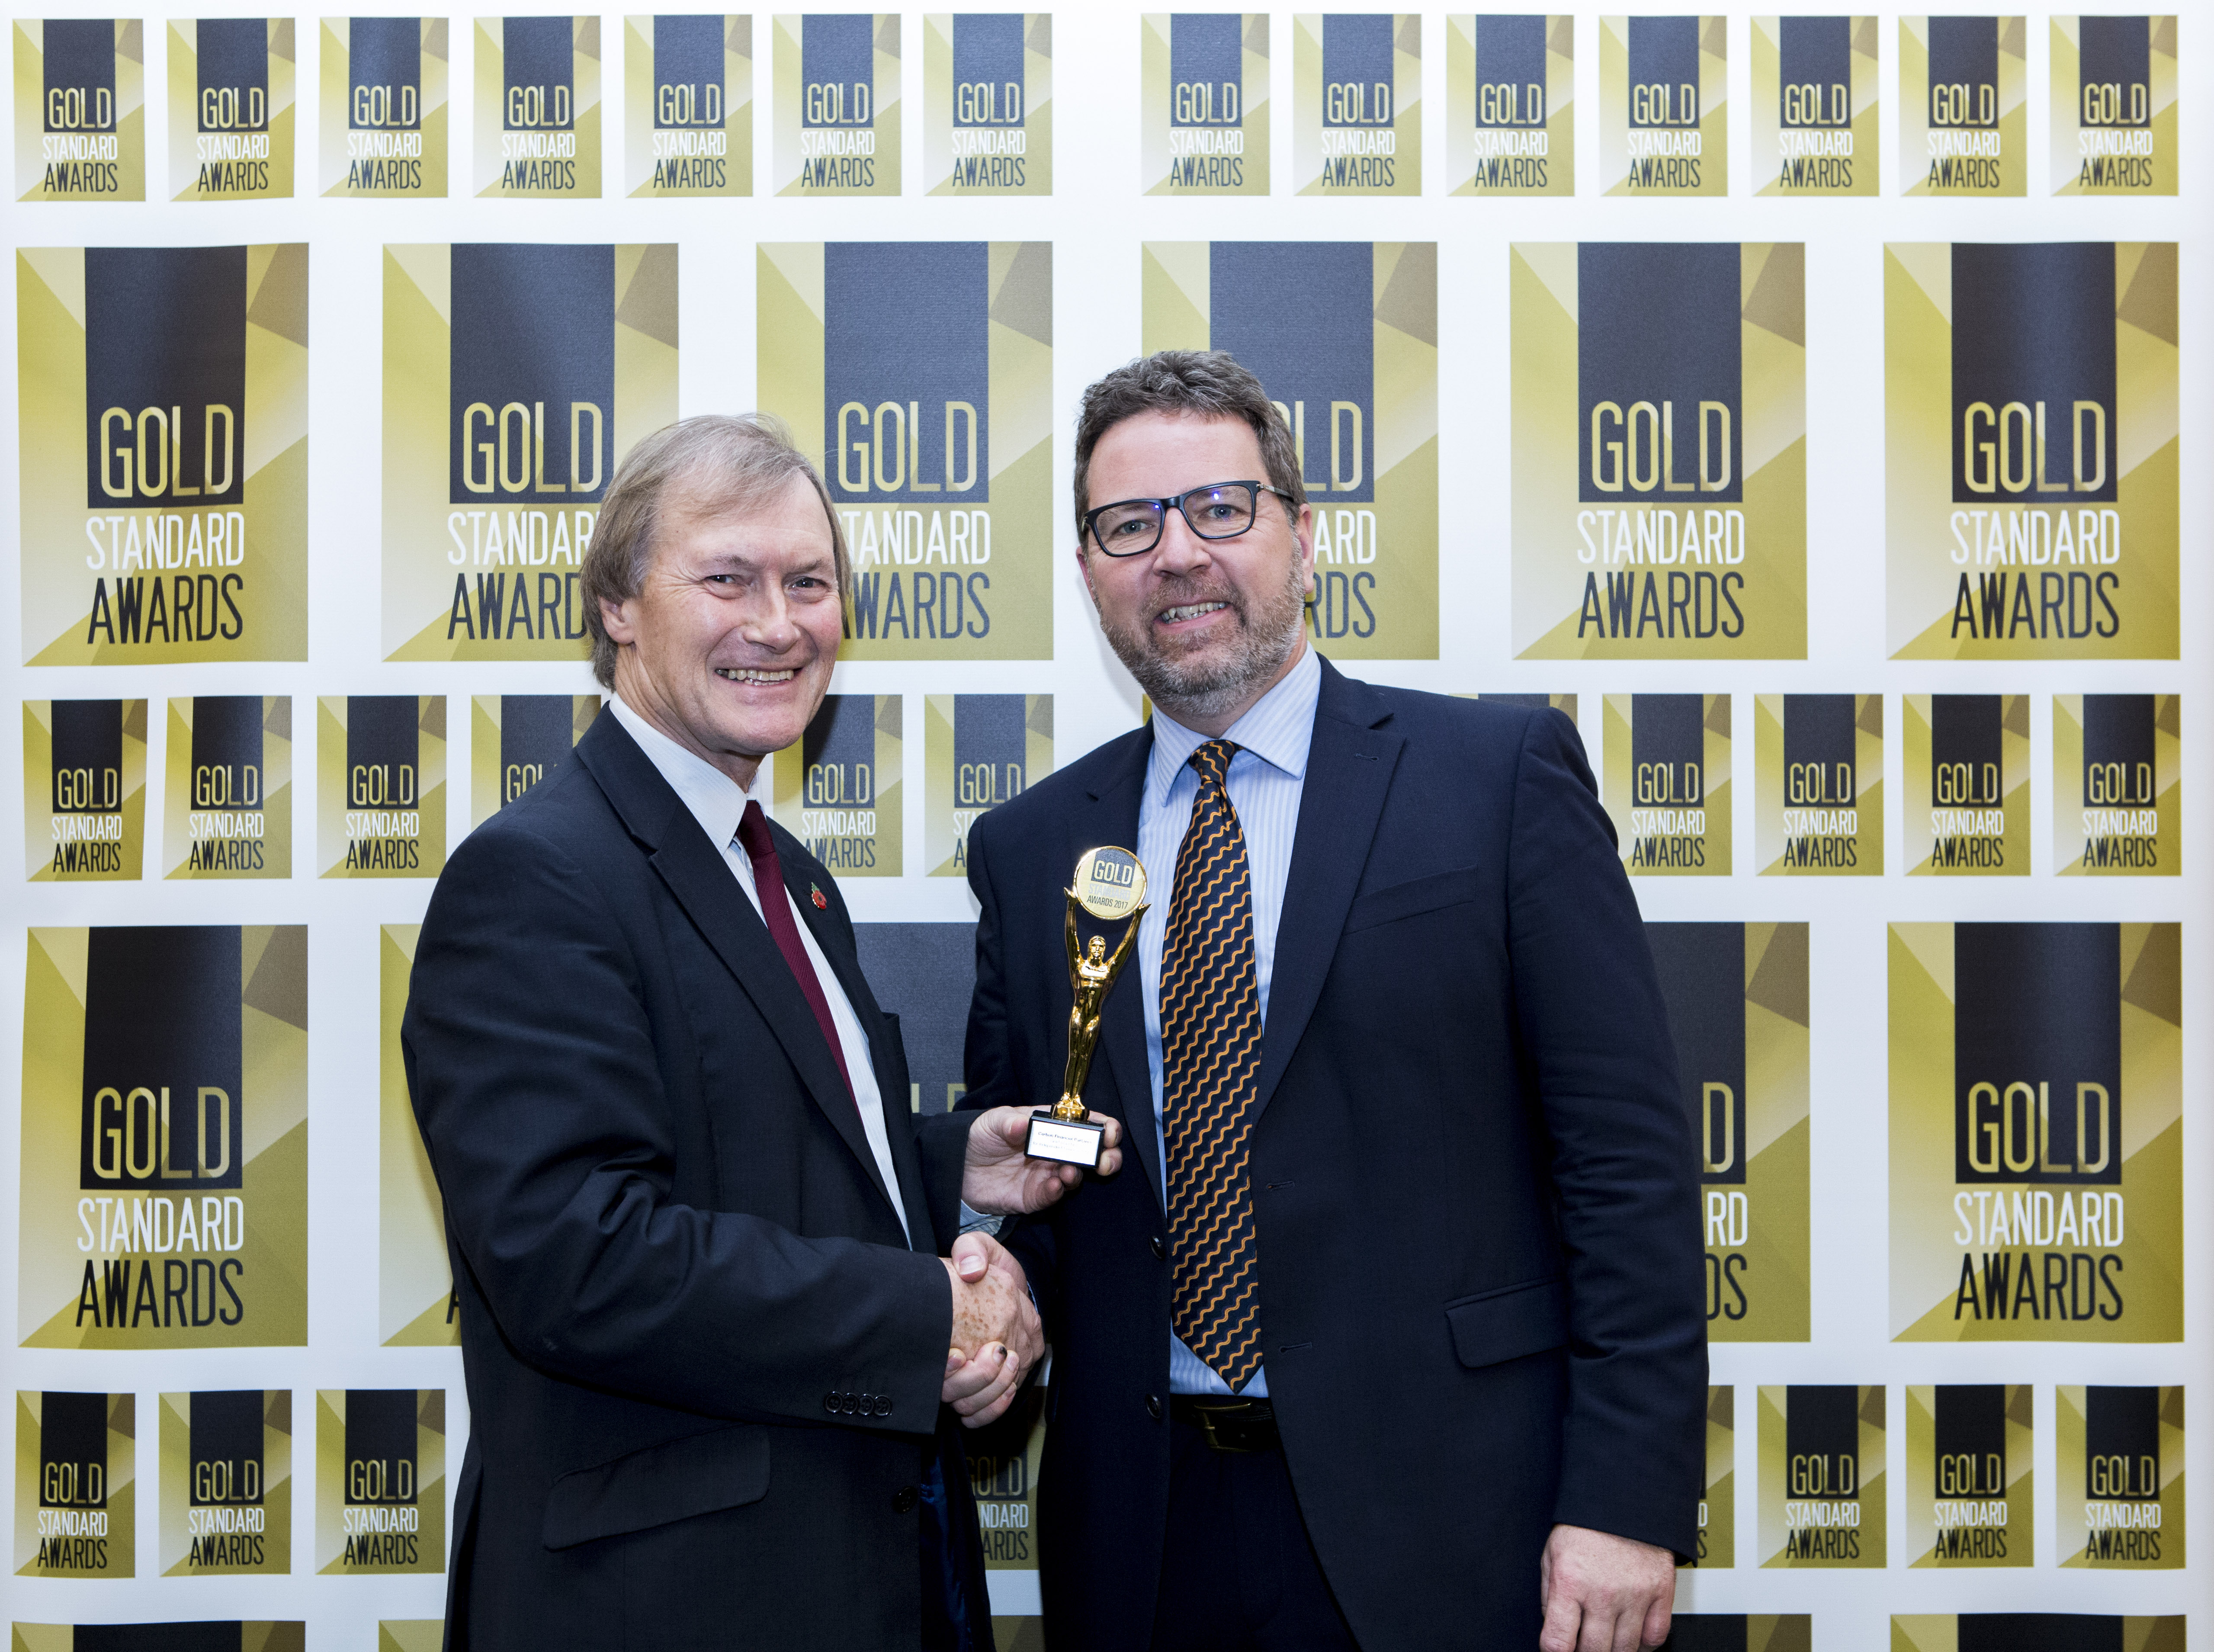 Gold Standard Awards - Carbon Wins Independent Financial Advice